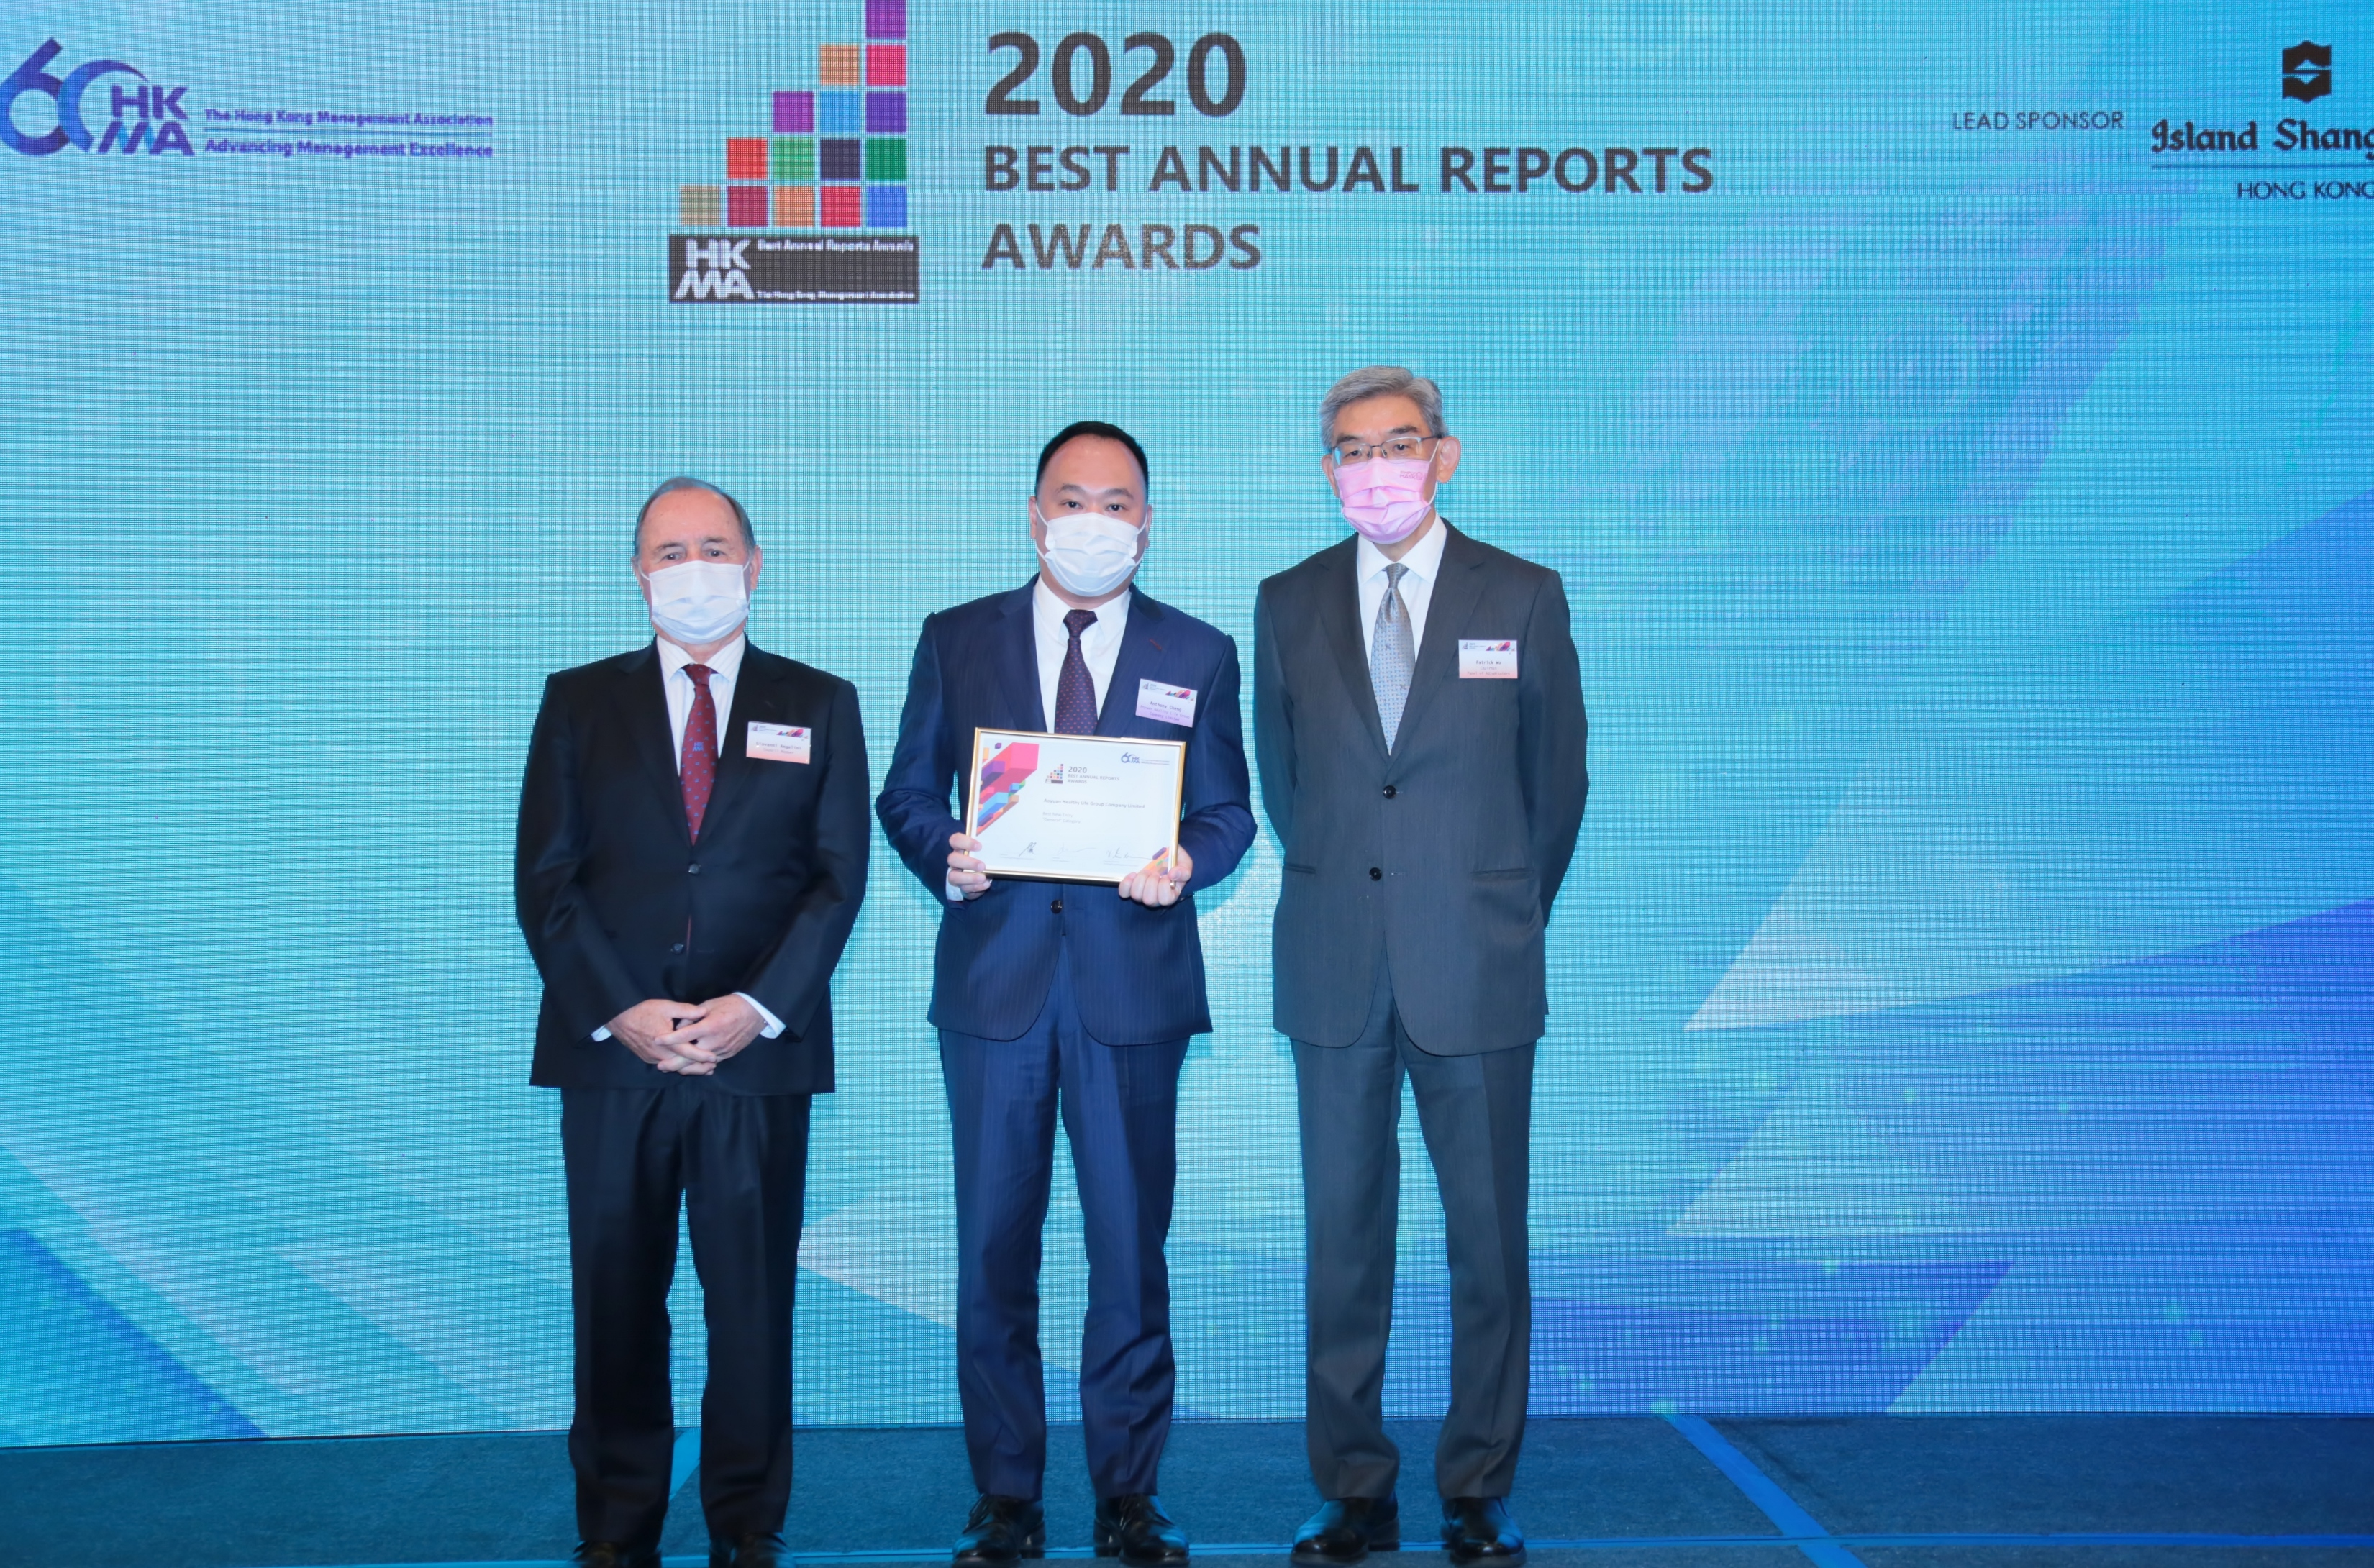 Aoyuan Healthy wins Best New Entry Award in 2020 HKMA Best Annual Reports Awards